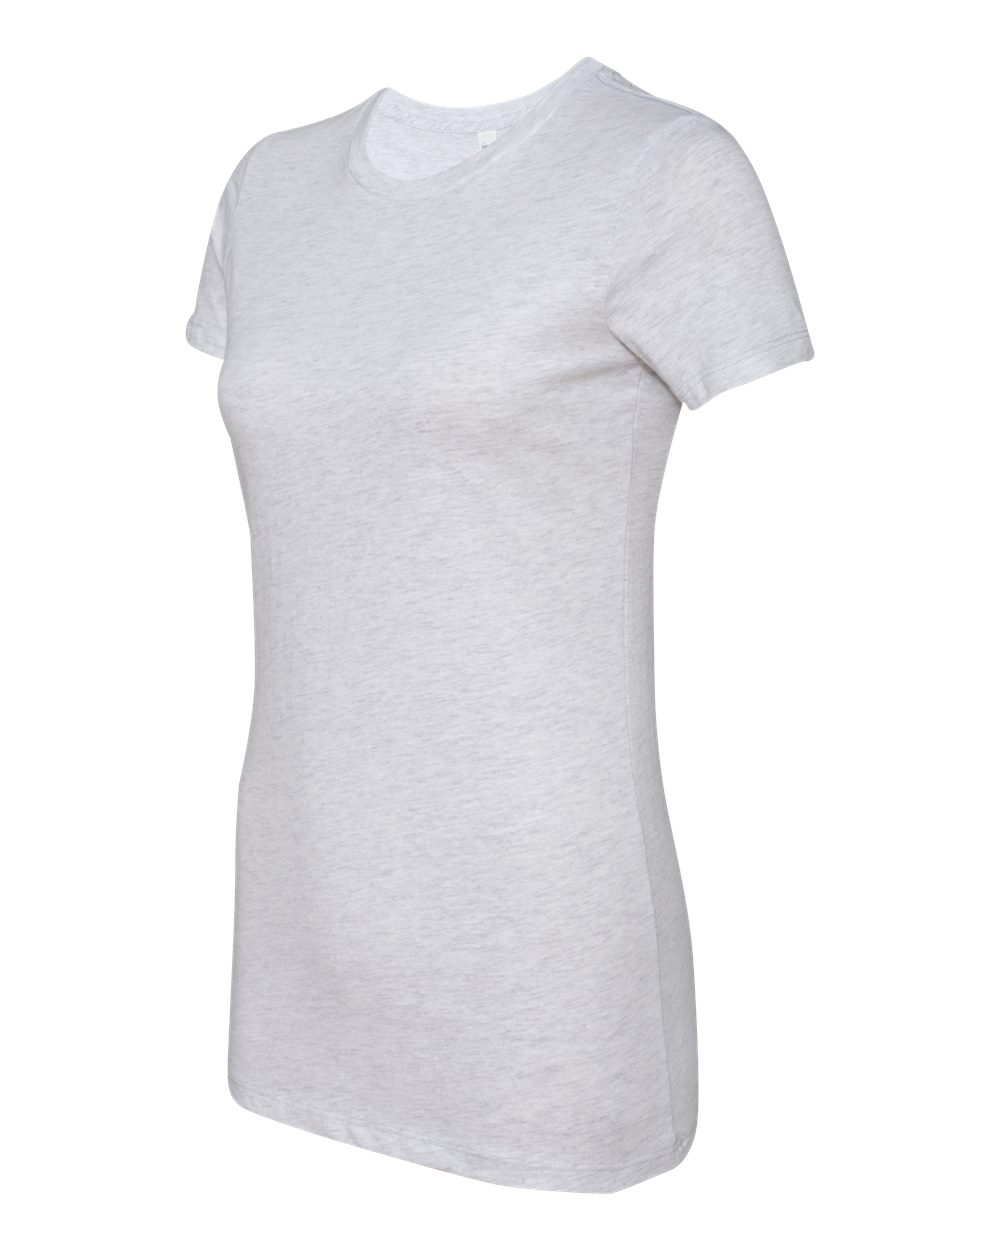 Bella-Canvas-Womens-The-Favorite-T-Shirt-6004-Size-S-2XL thumbnail 151